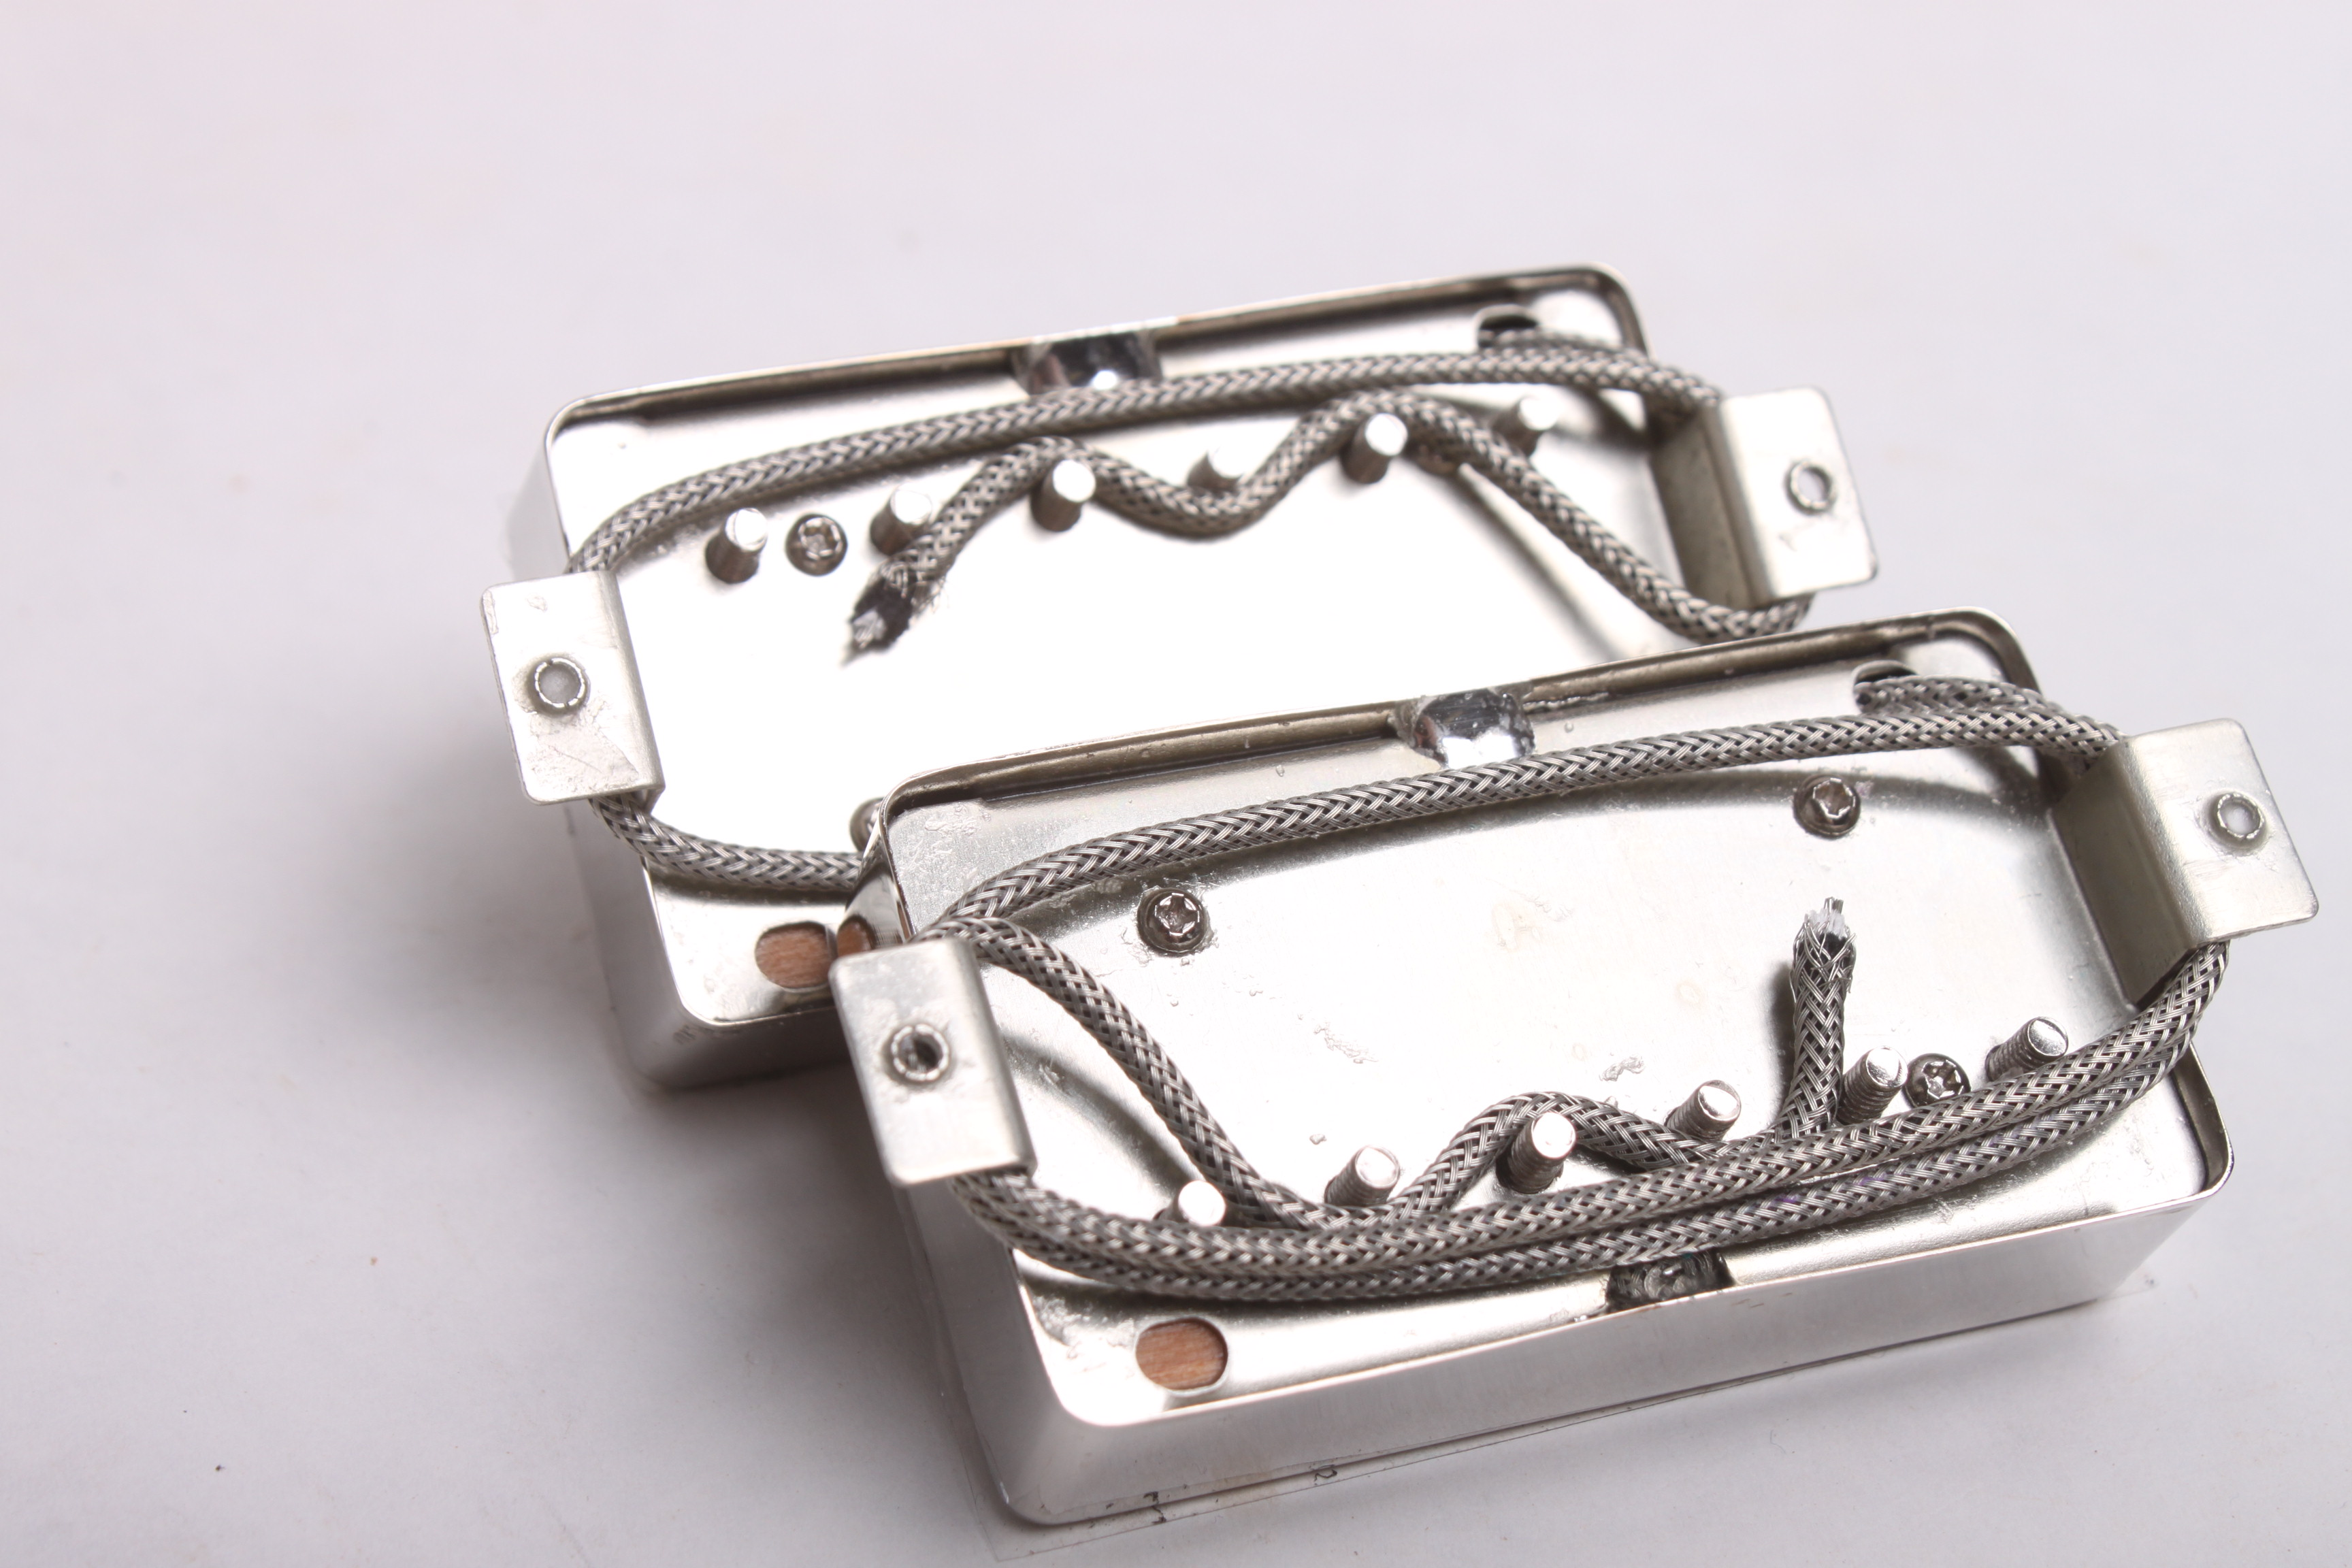 Blizzard Of 59 Vintage Humbucker Set Guitar Bodies And Kits From Les Paul Wiring Diagram Byoguitar